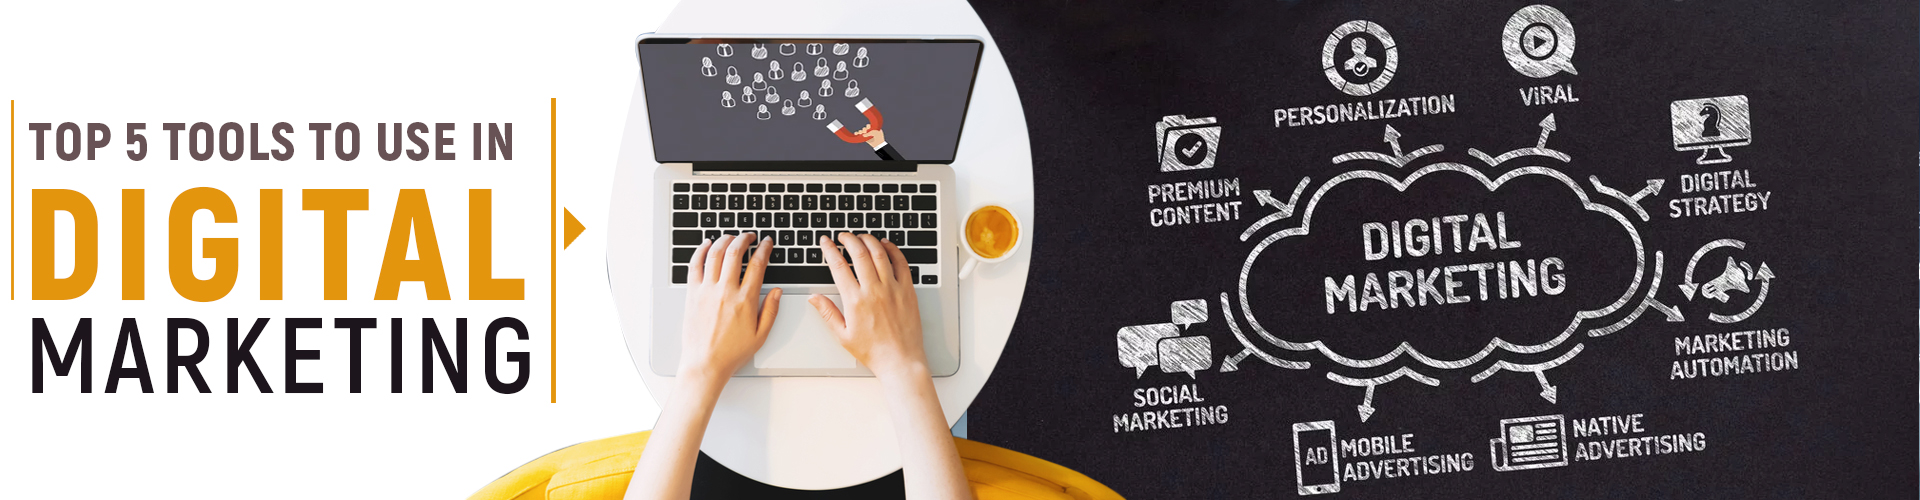 You are currently viewing TOP 5 TOOLS TO USE IN DIGITAL MARKETING